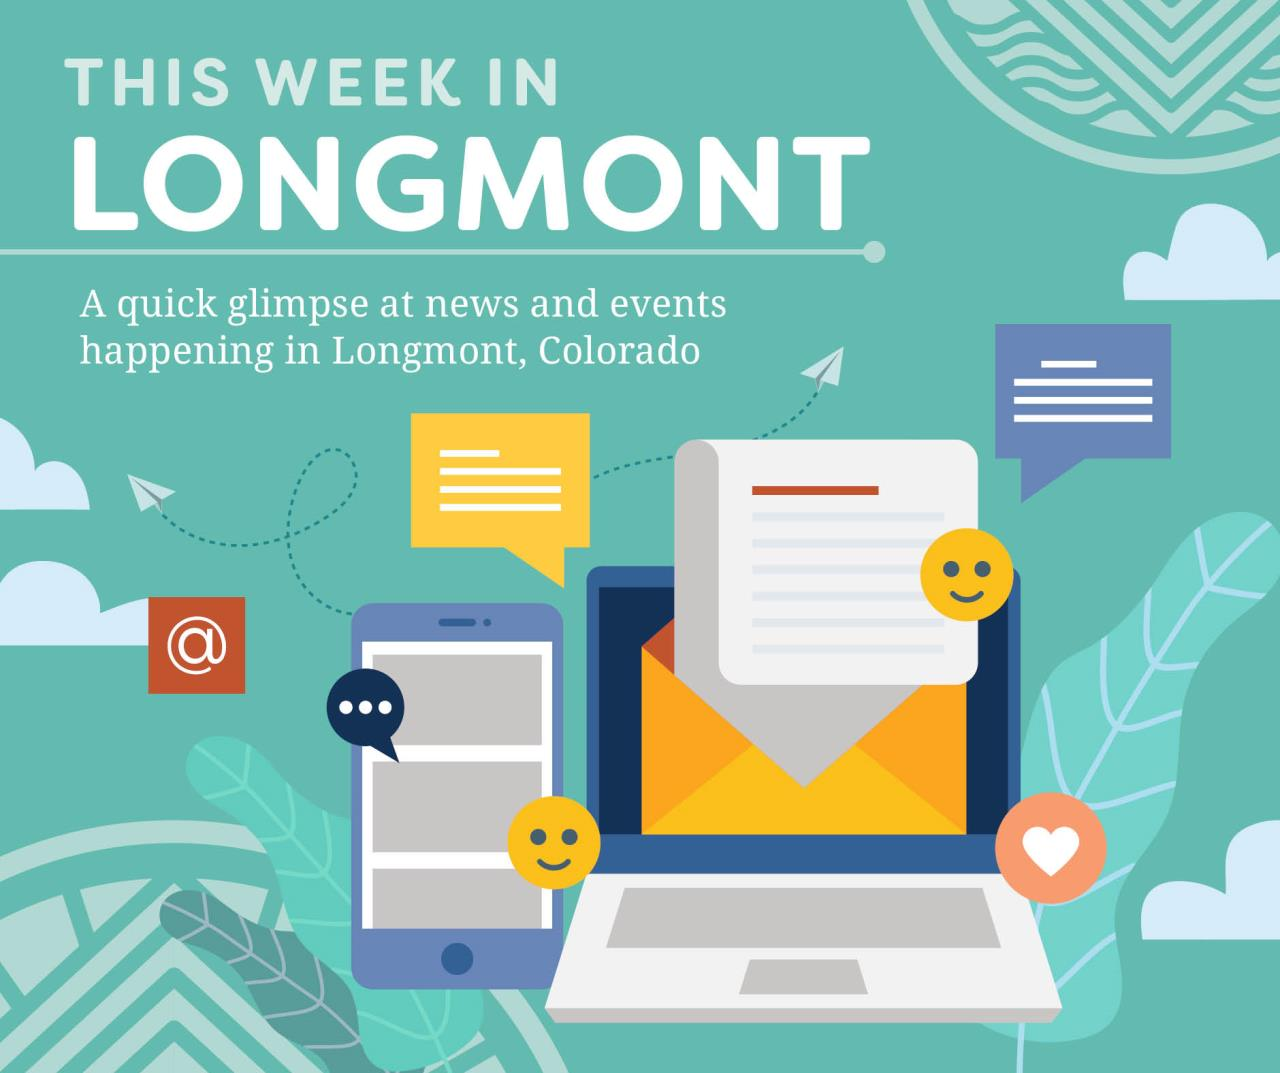 This Week in Longmont-Get the latest information about events and news happening this week in Longmont